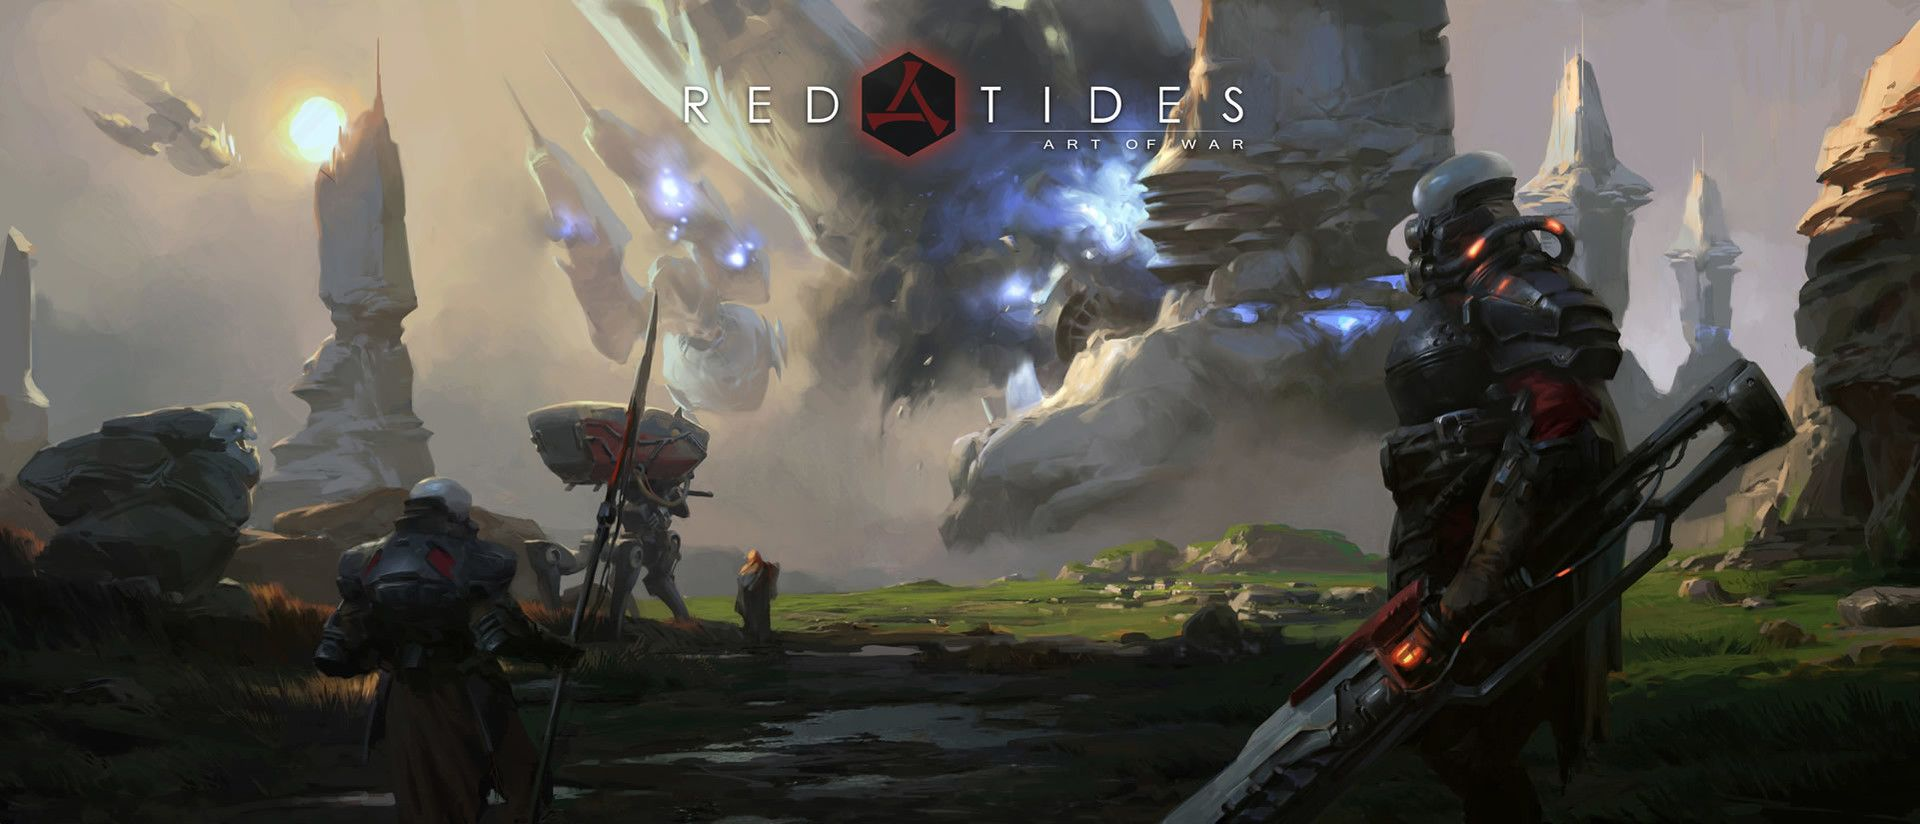 Art Of War Red Tides Cheat And Hack 2018 Unlimited Ingots Gems Hacks Mods Computer Case Warhammer 40k Work On All Ios Android Devices If You Were Looking For This